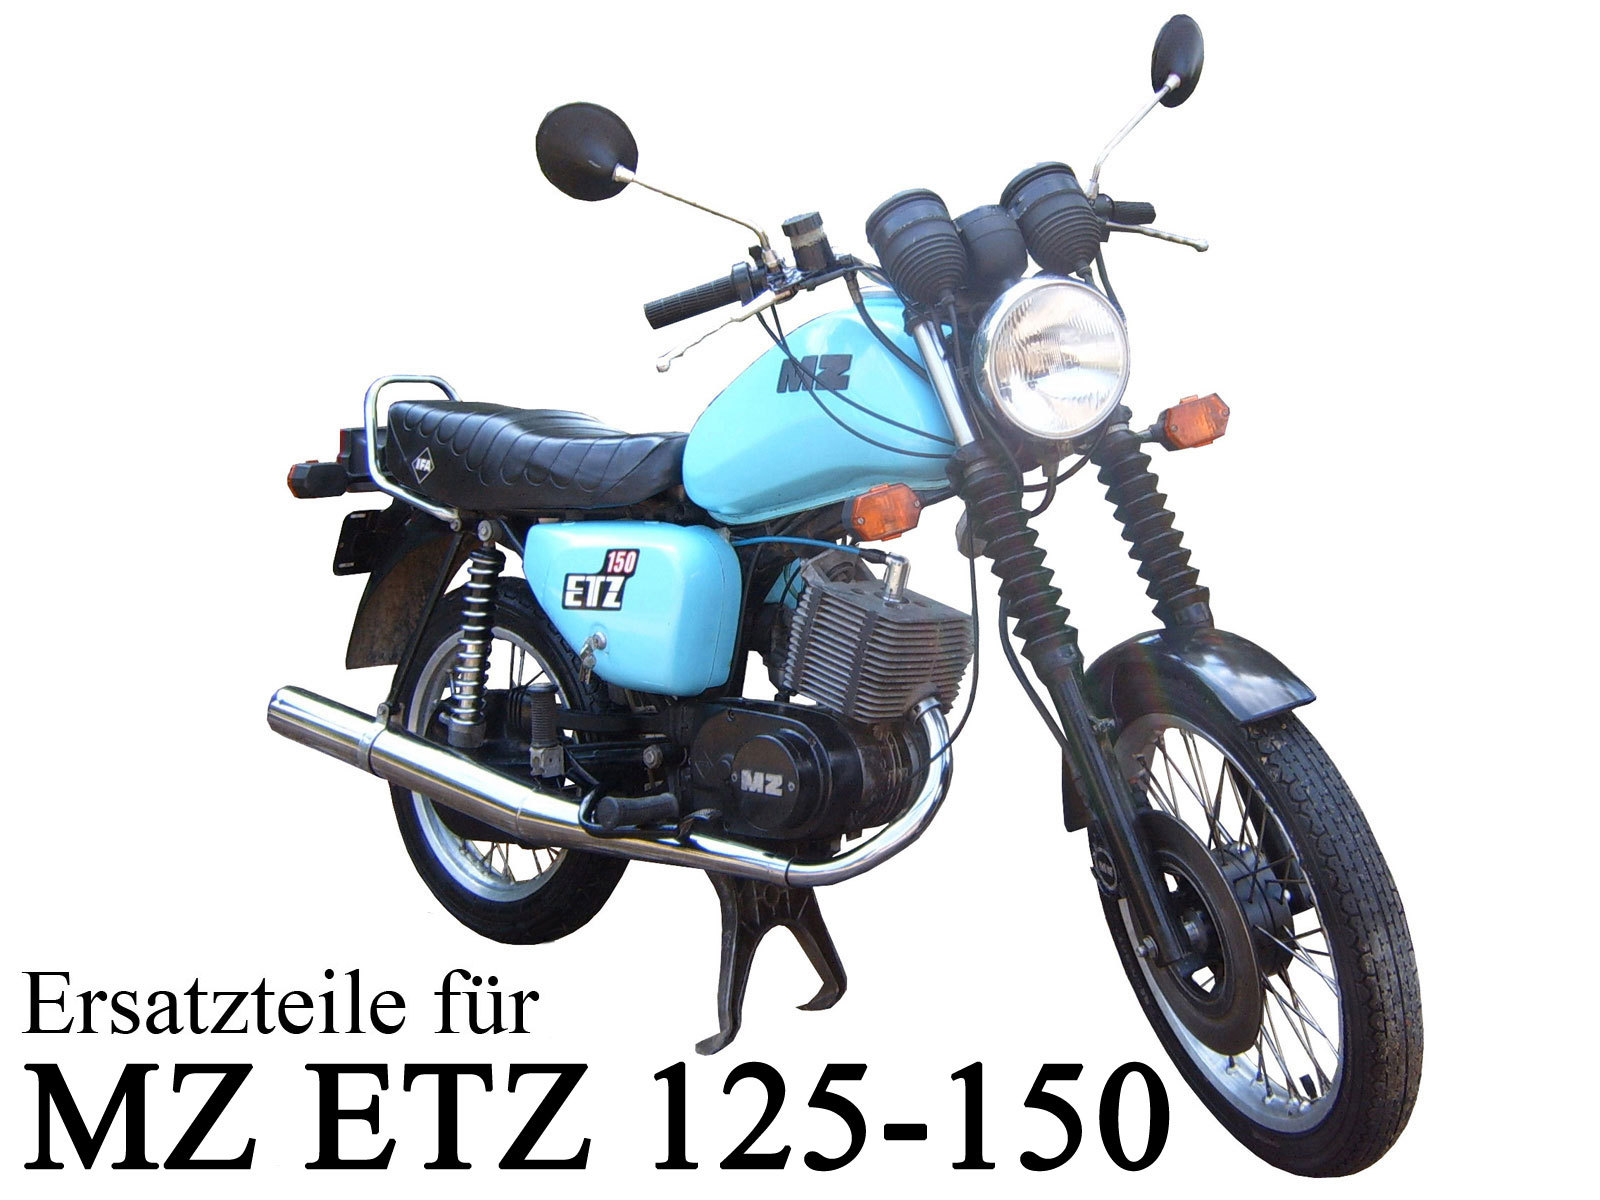 mz etz 125 motor motorrad fahrzeuge en deutsche t. Black Bedroom Furniture Sets. Home Design Ideas